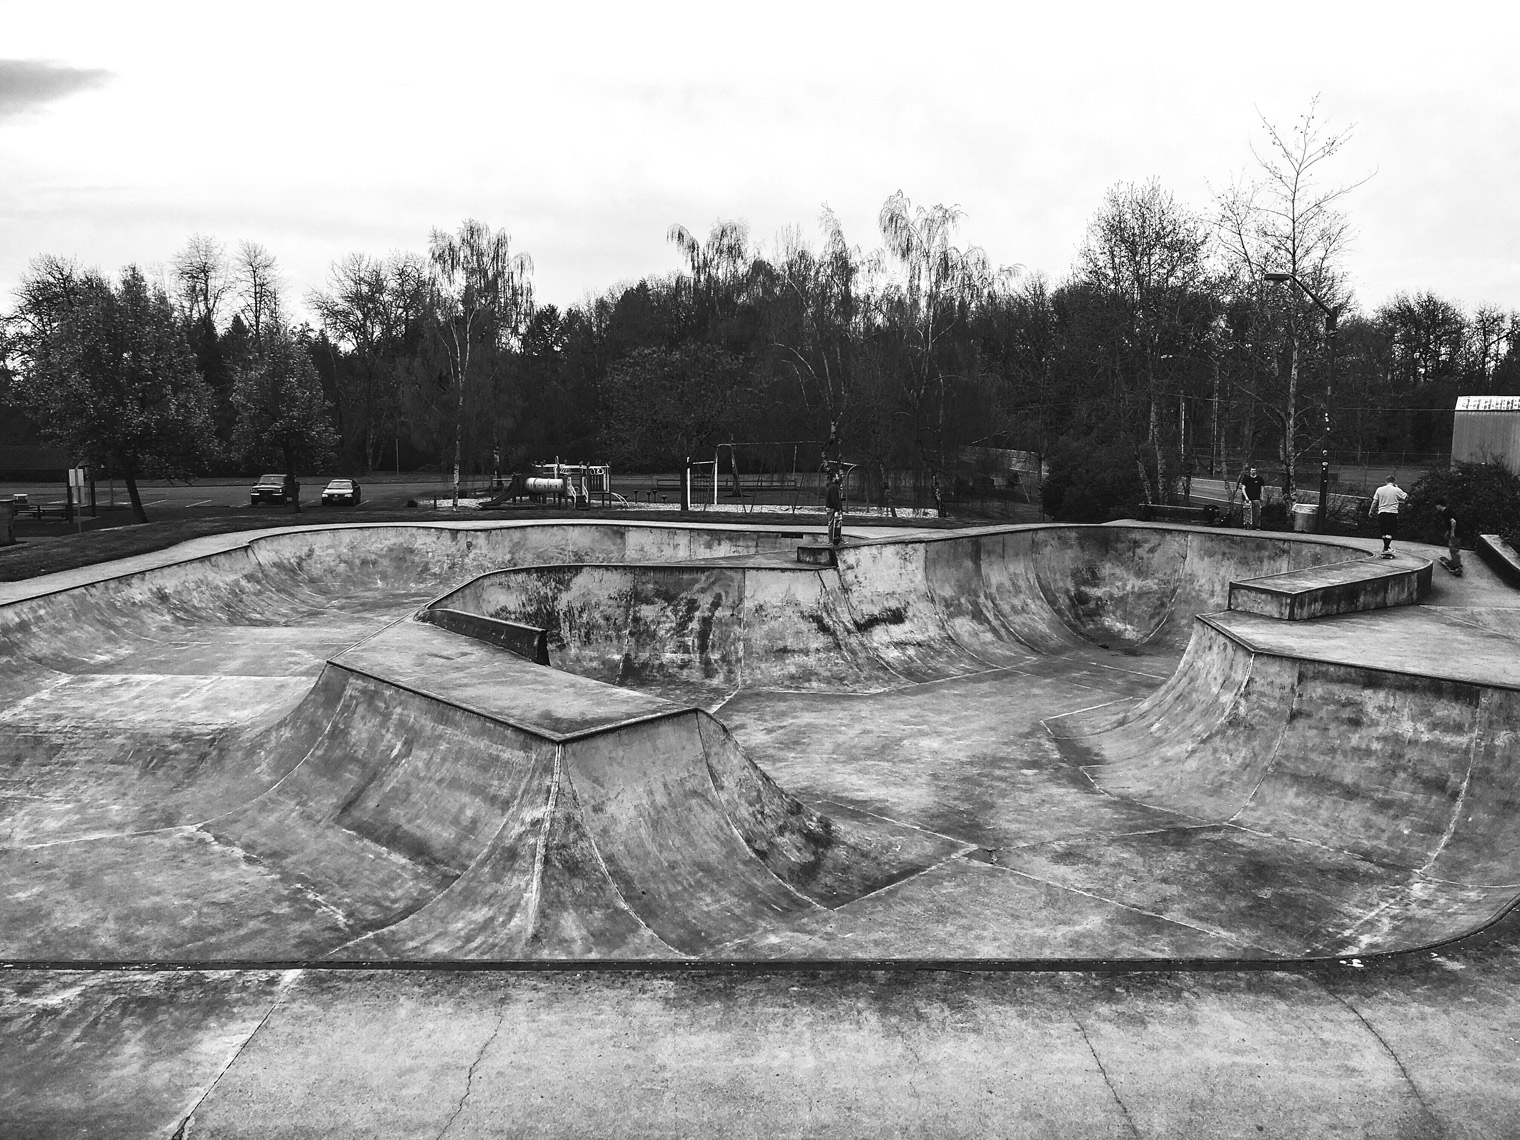 RoadTripping_SkateparkProject_Park12_Town_Retouched_Web